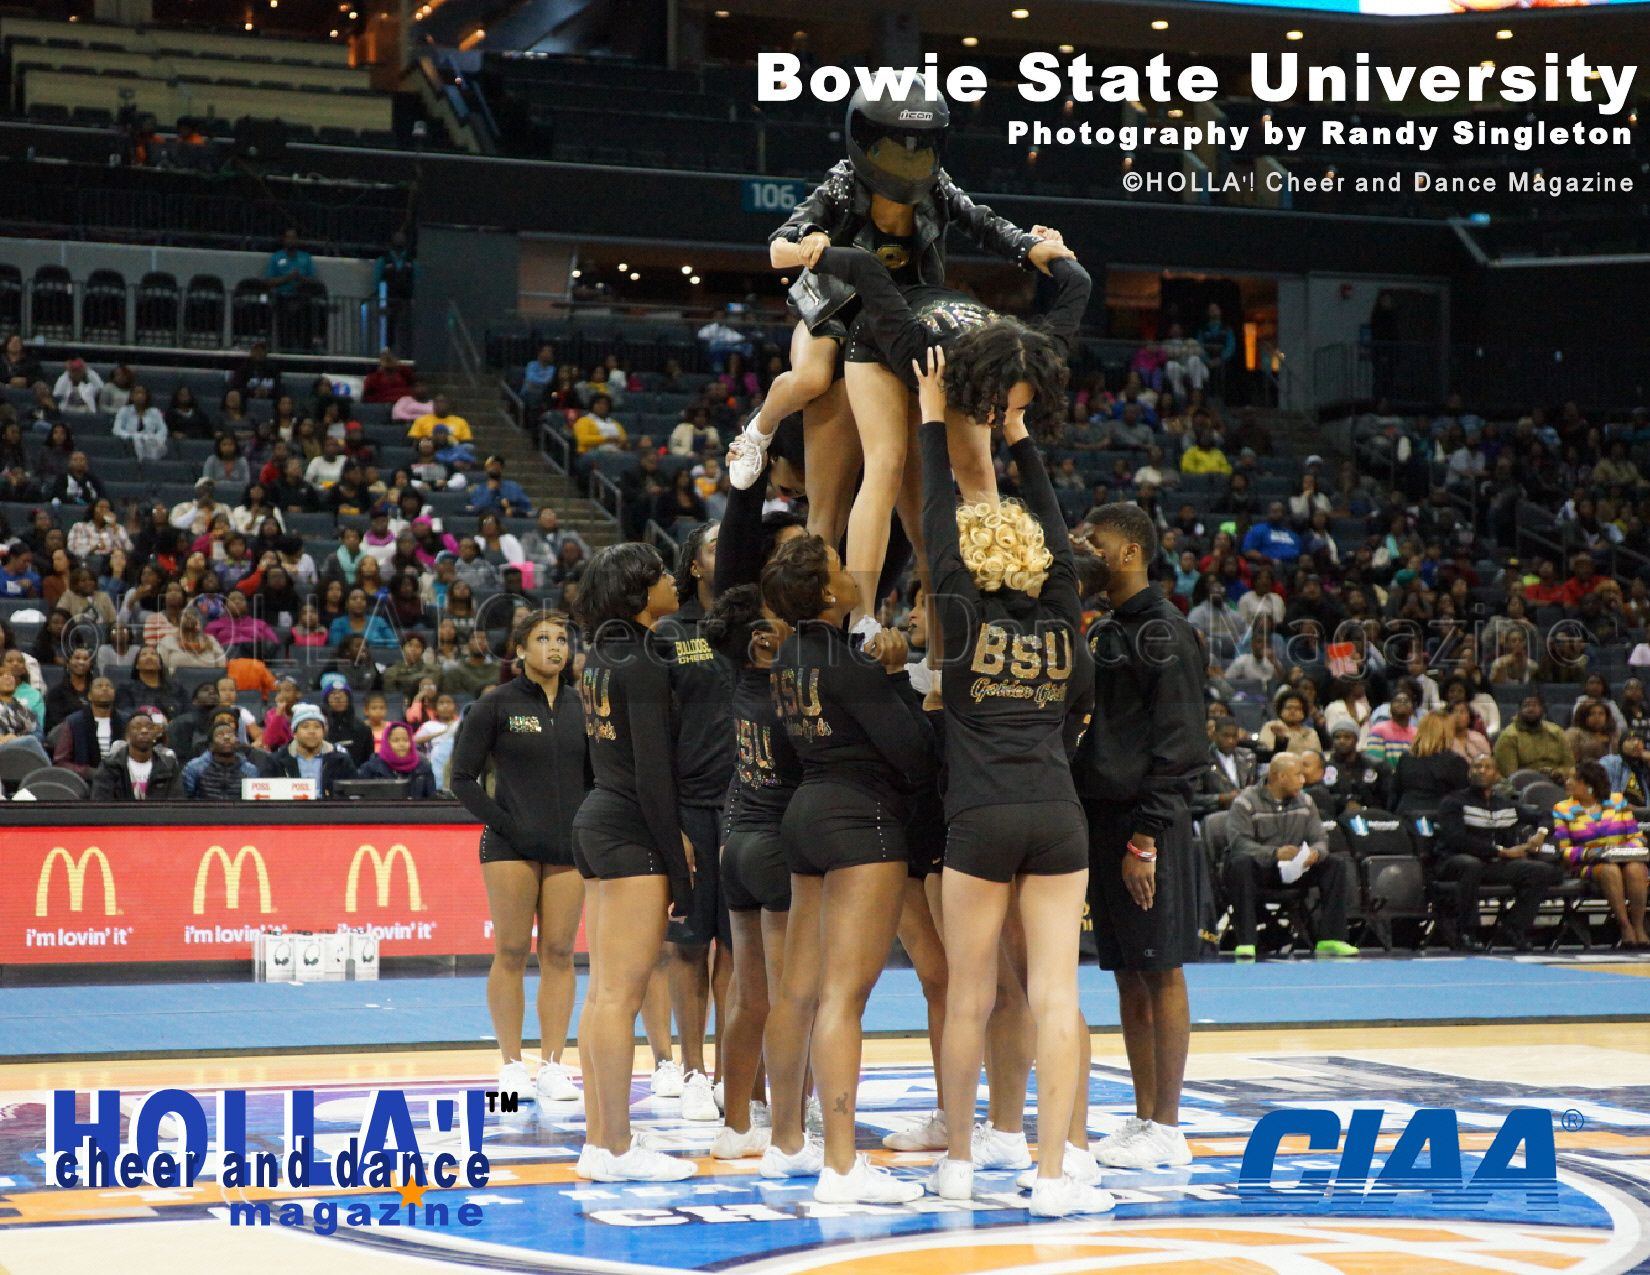 Bowie State University See More Ciaa Cheerleading Exhibition Pictures At Www Hollacheerdancemagazine Com Dance Magazine Cheerleading Dance